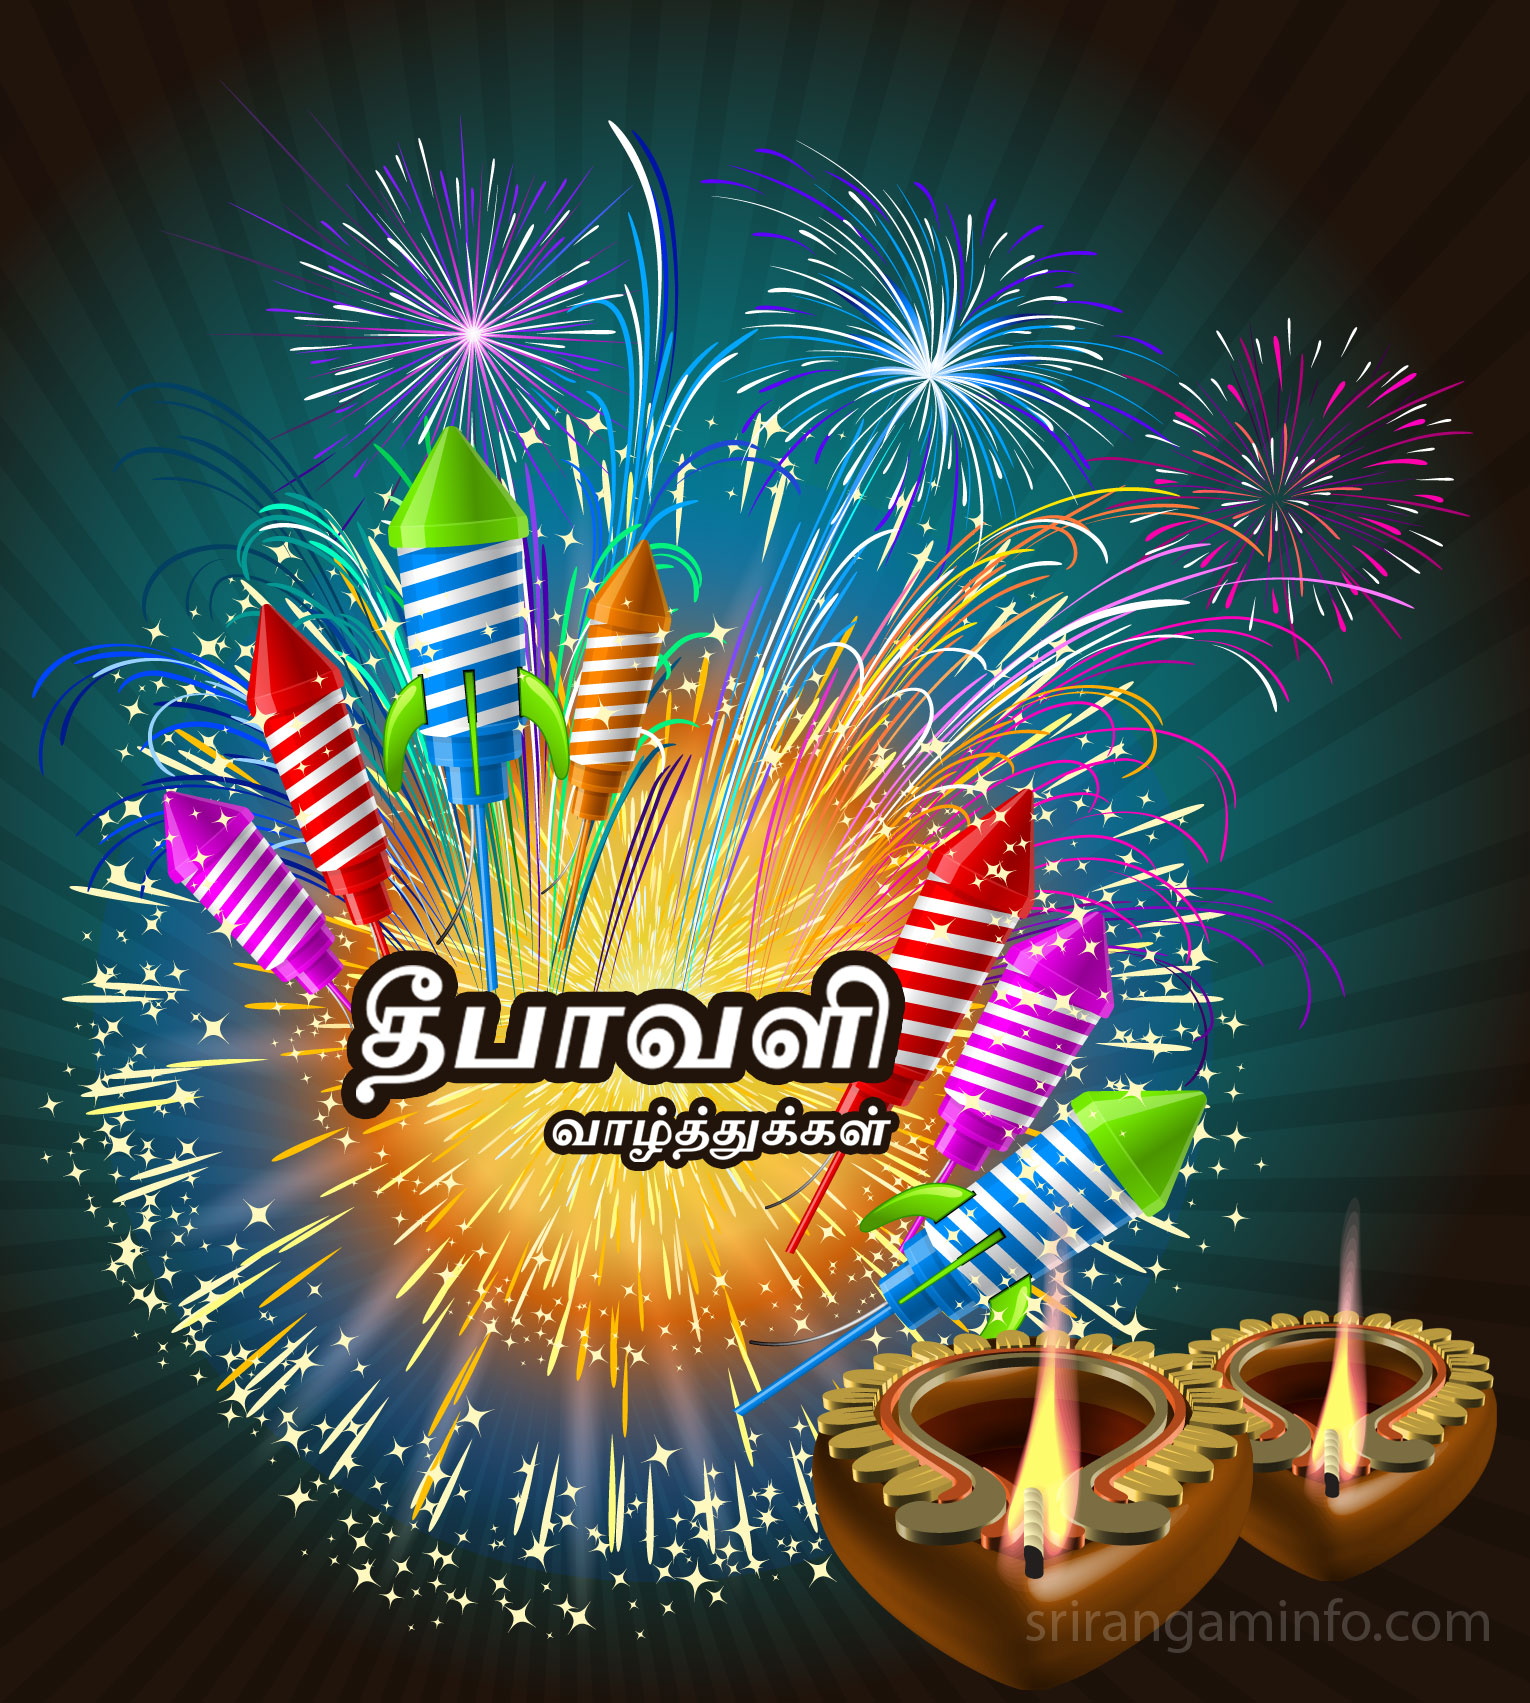 Deepavali greetings in tamil 2017 deepavali greetings tamil happy diwali in tamils kristyandbryce Gallery